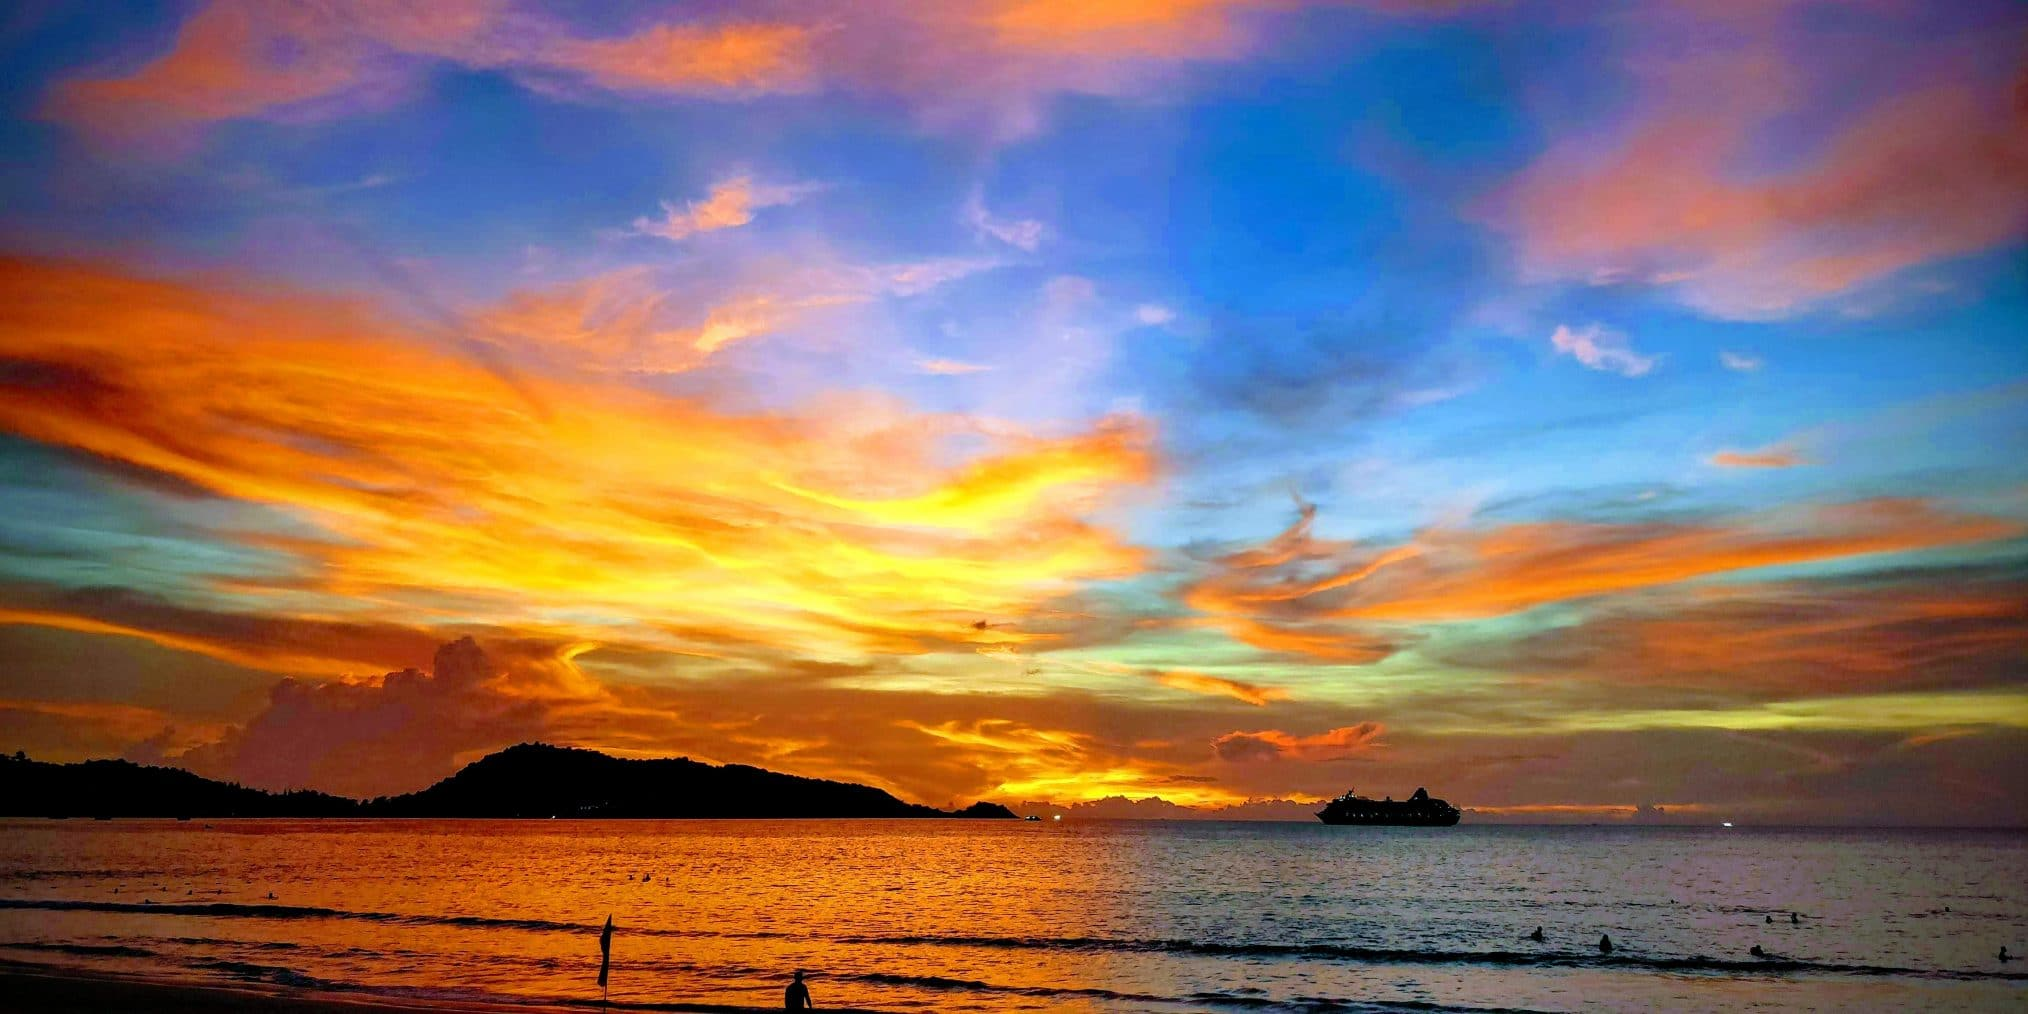 an ocean sunset in Phuket